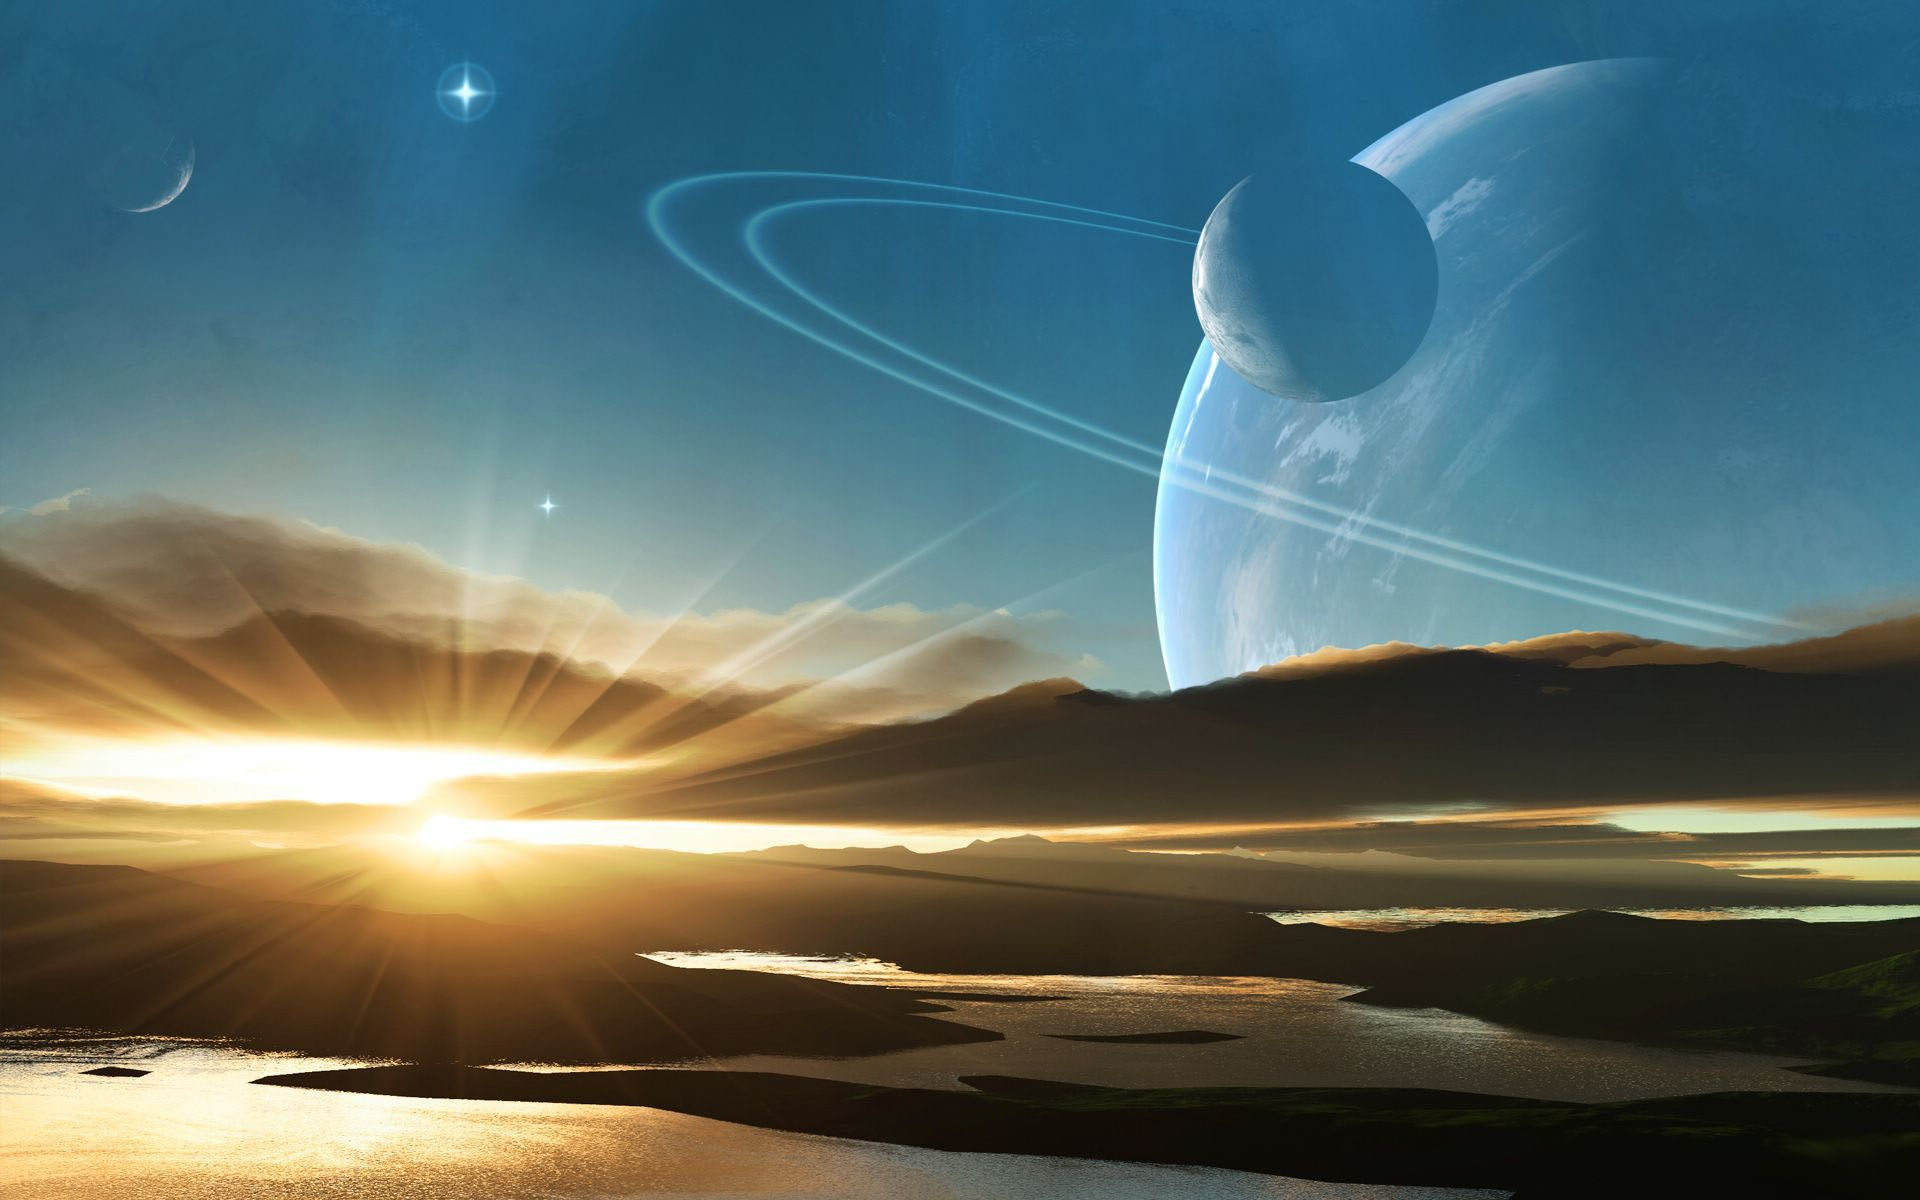 Real Pictures Of Saturn From Space Light On Saturn 3d Space